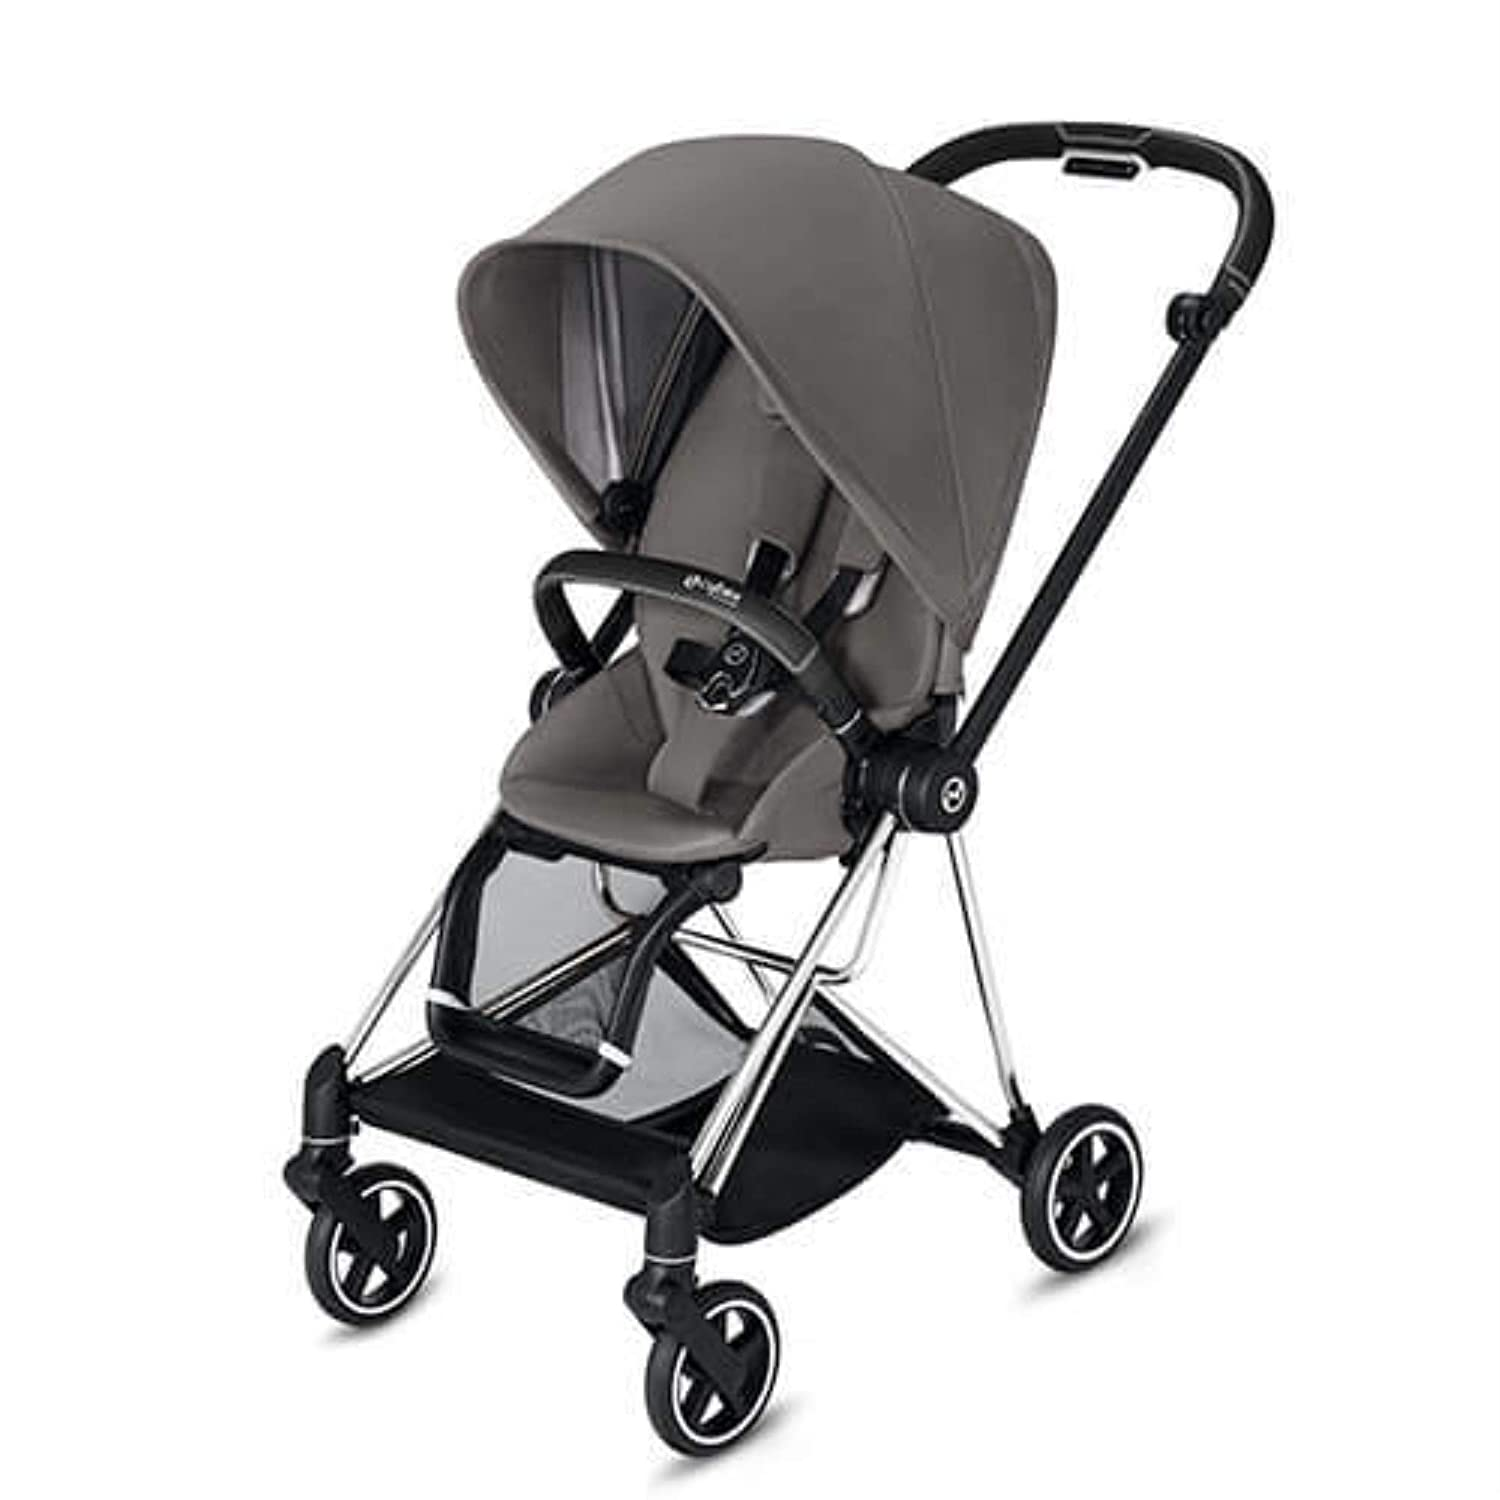 Cybex Mios 2 Complete Stroller, One-Hand Compact Fold, Reversible Seat, Smooth Ride All-Wheel Suspension, Extra Storage, Adjustable Leg Rest, Manhattan Grey Seat with Chrome/Black Frame